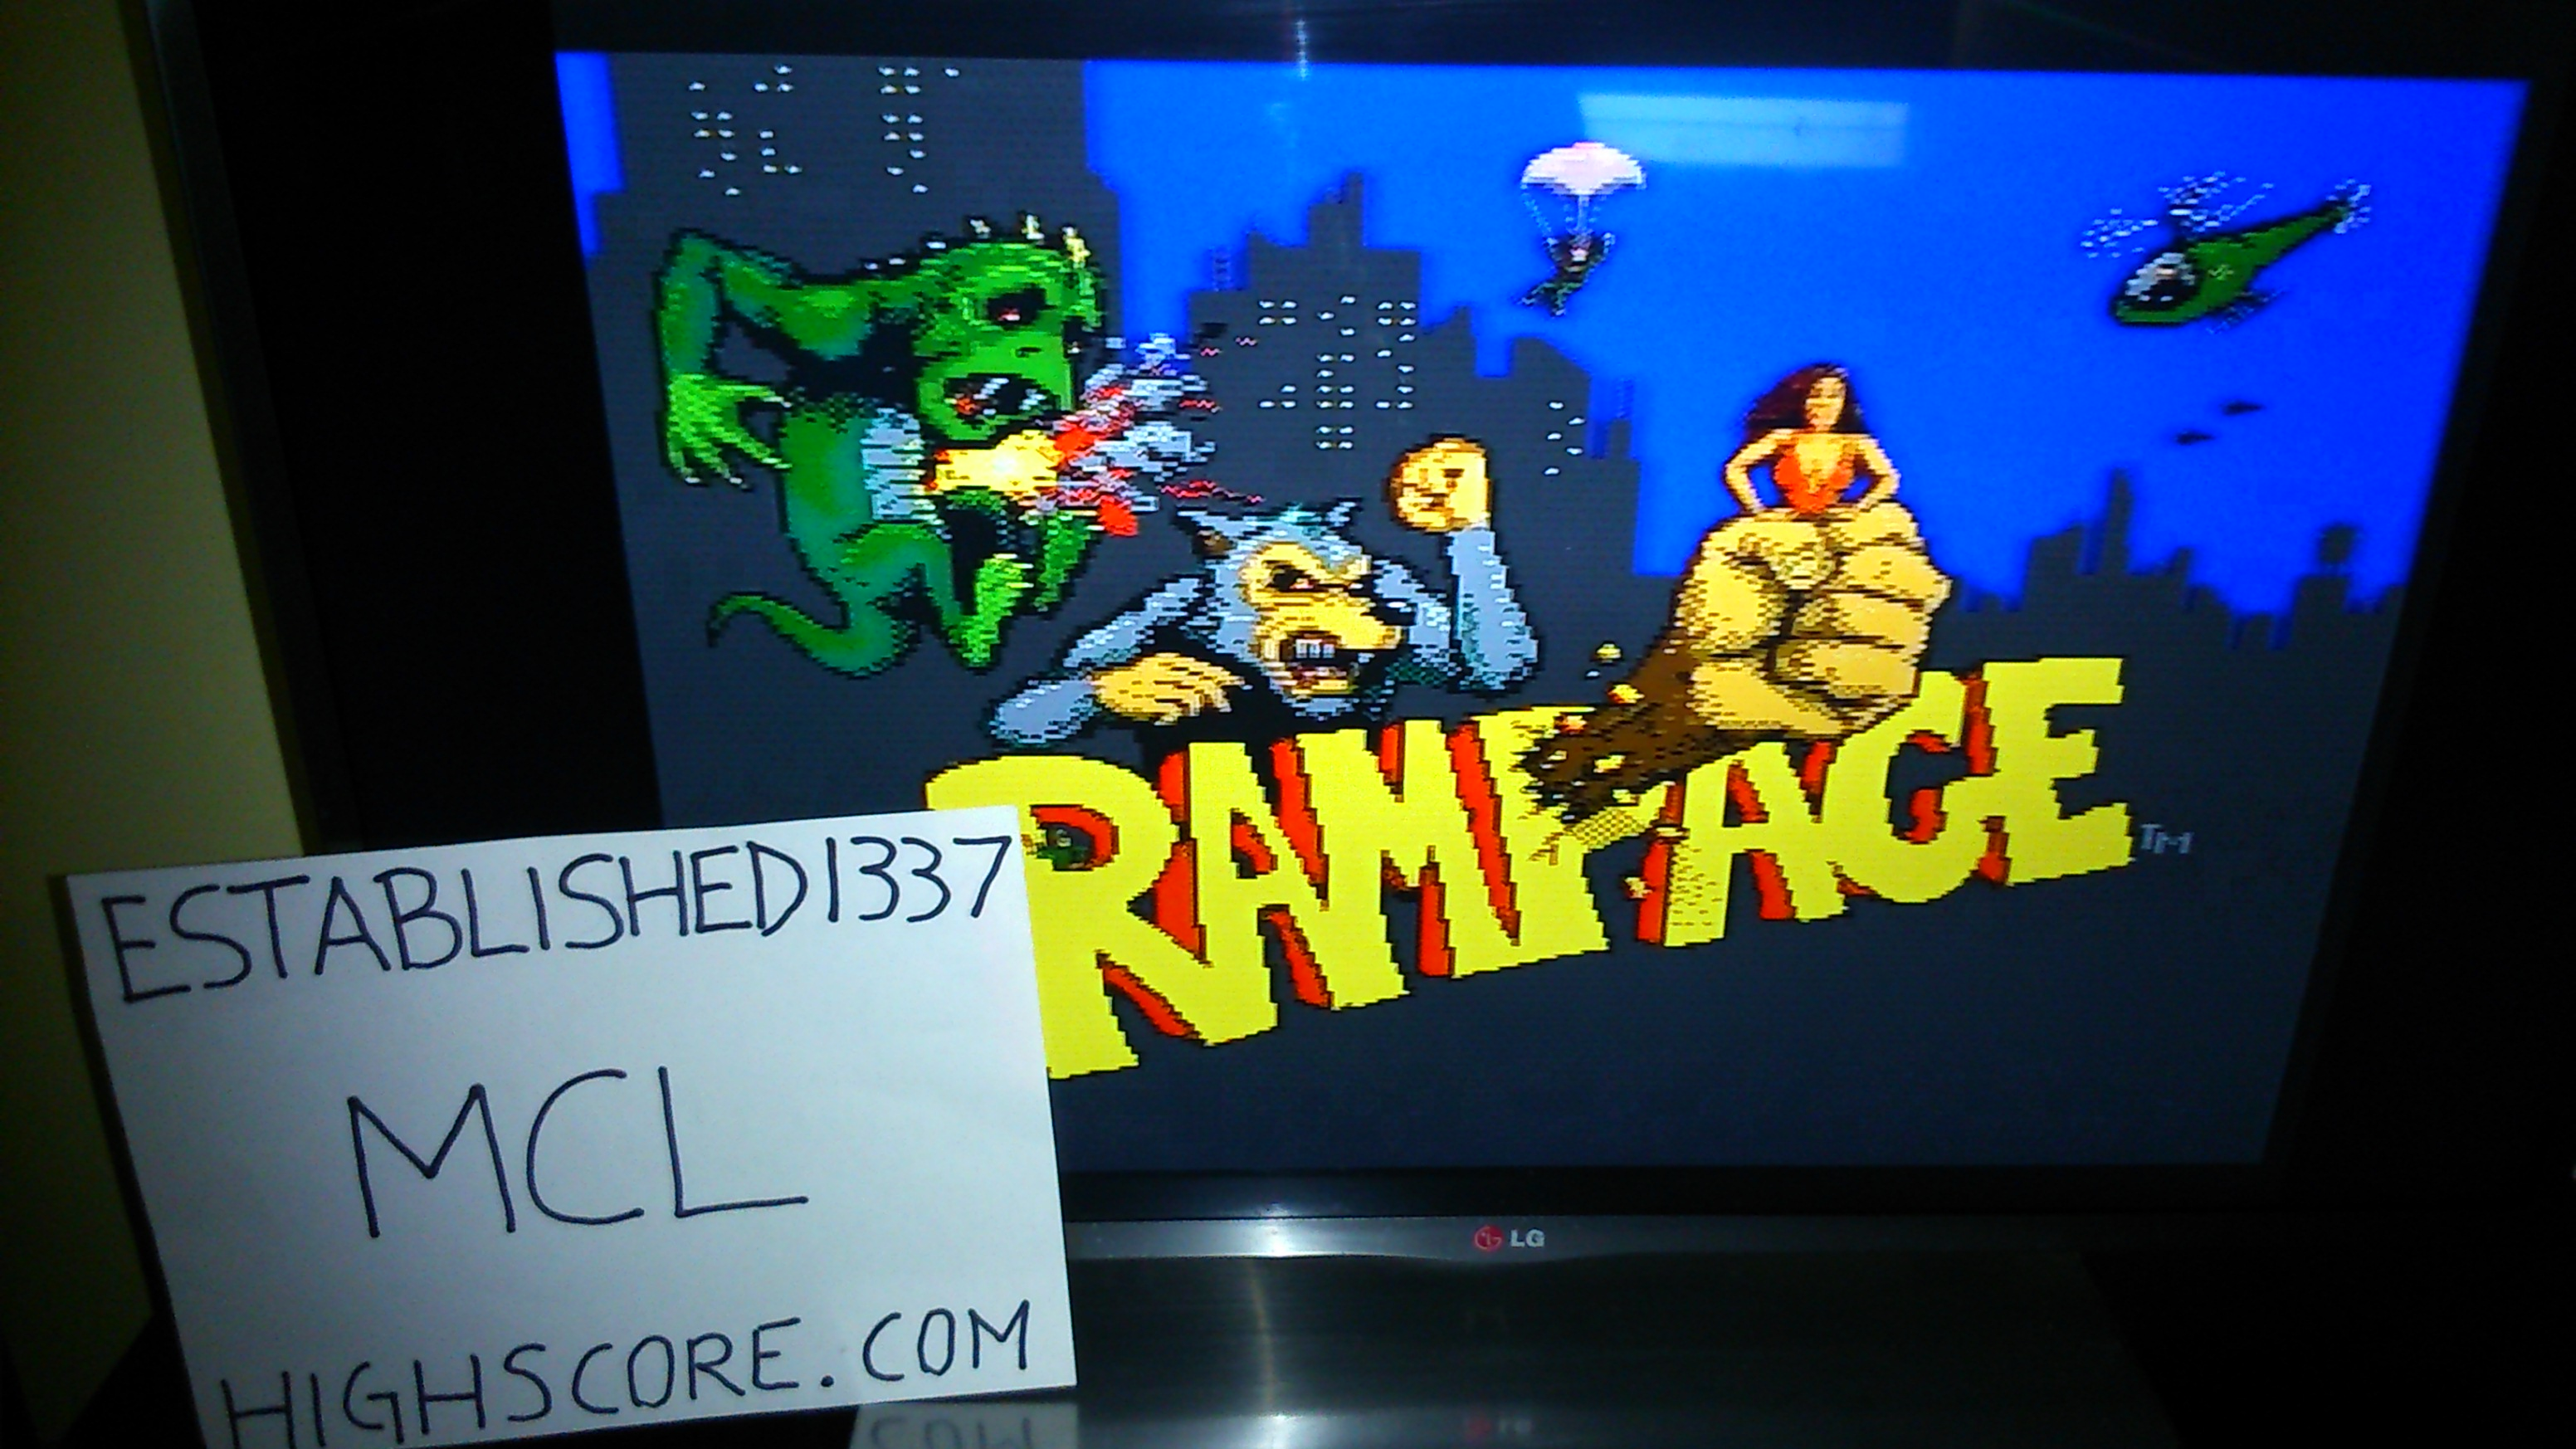 Established1337: Arcade Party Pak: Rampage [normal] (Playstation 1) 37,775 points on 2018-08-16 11:30:19